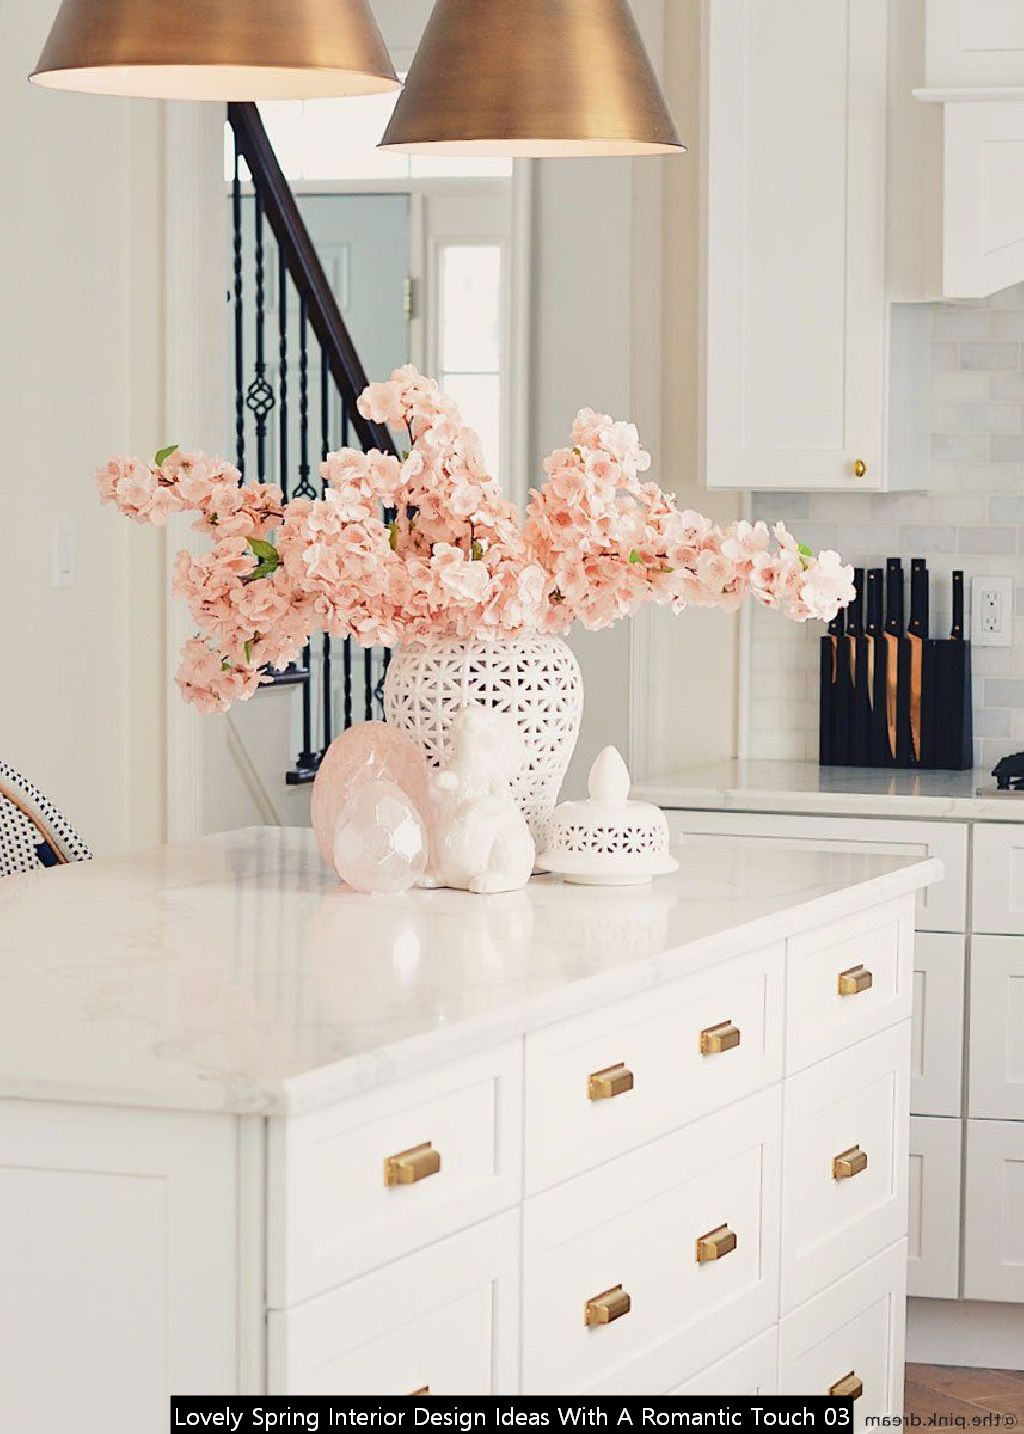 Lovely Spring Interior Design Ideas With A Romantic Touch 03